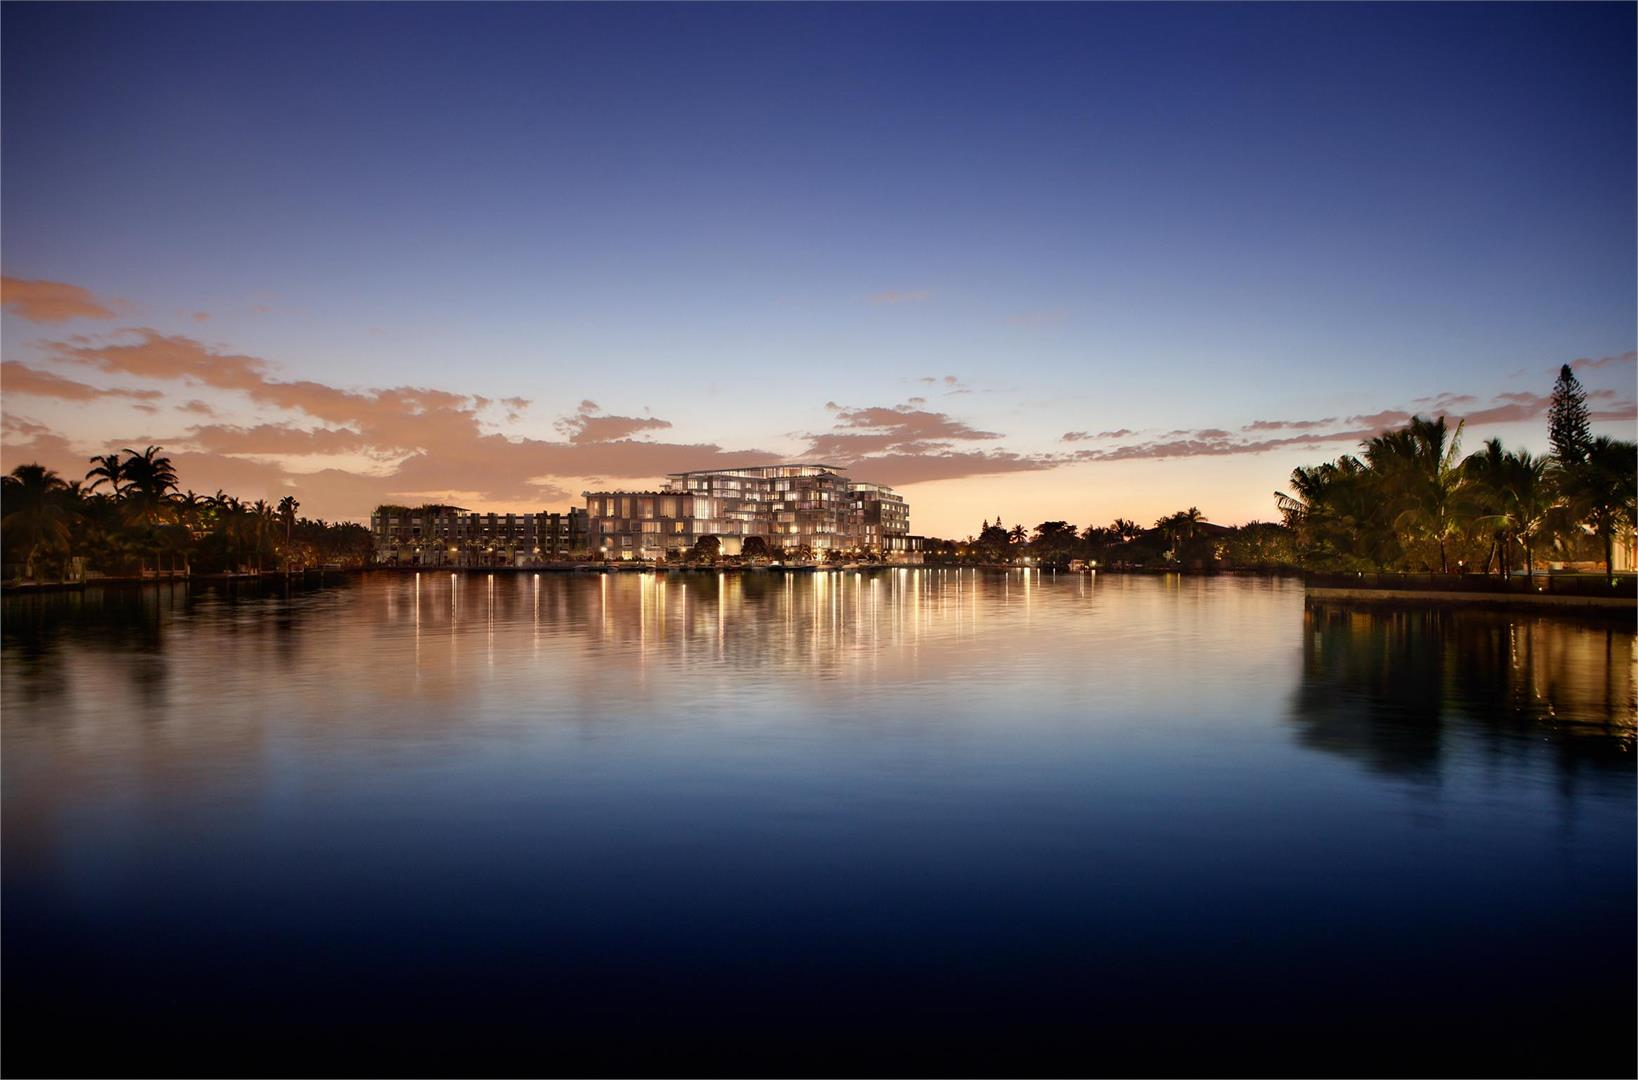 The Ritz-Carlton Residences - Image 5